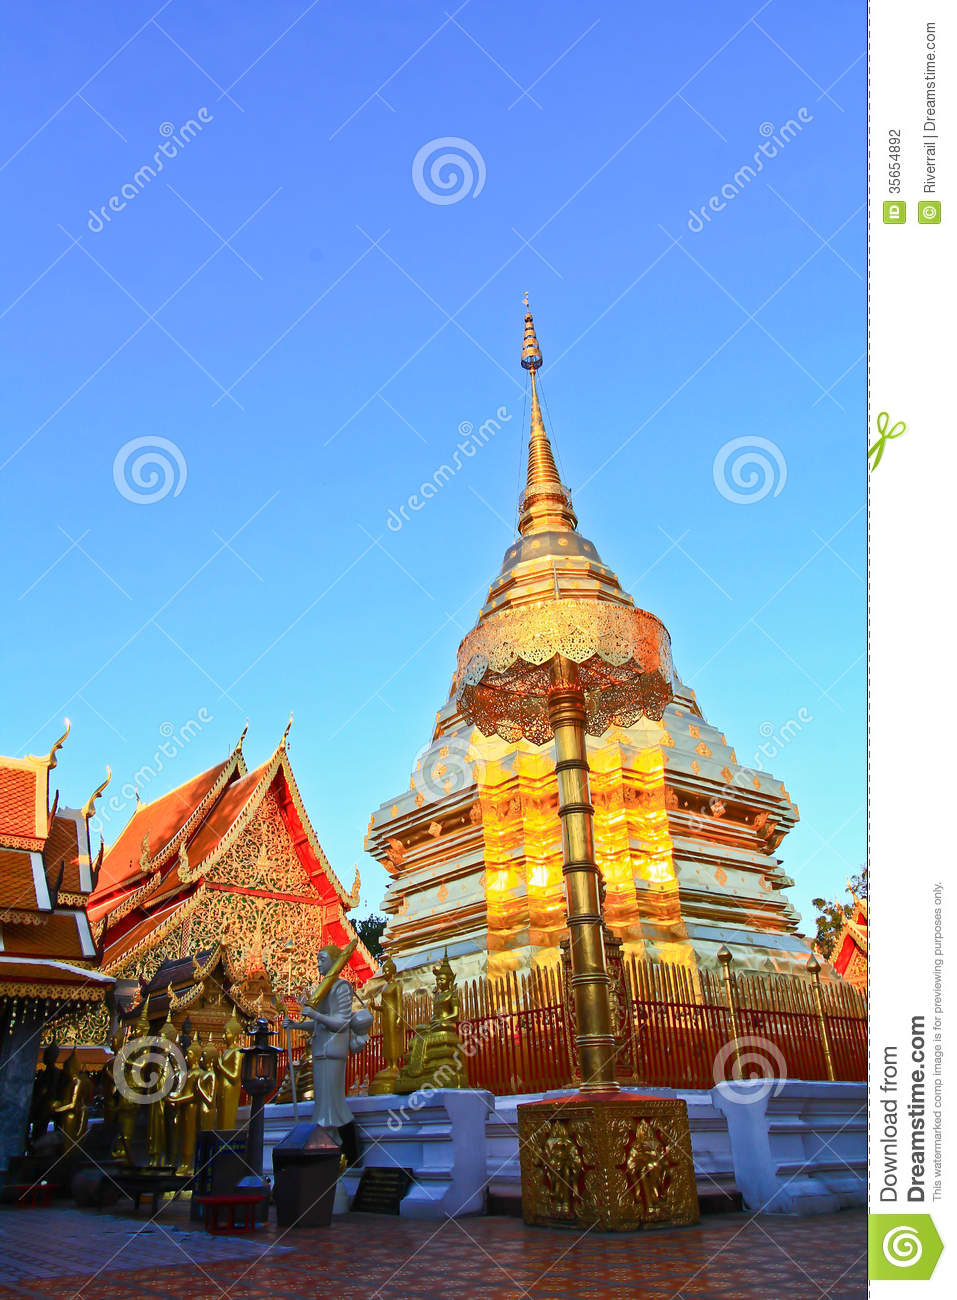 Wat Phra That Doi Suthep Stock Photography - Image: 35654892